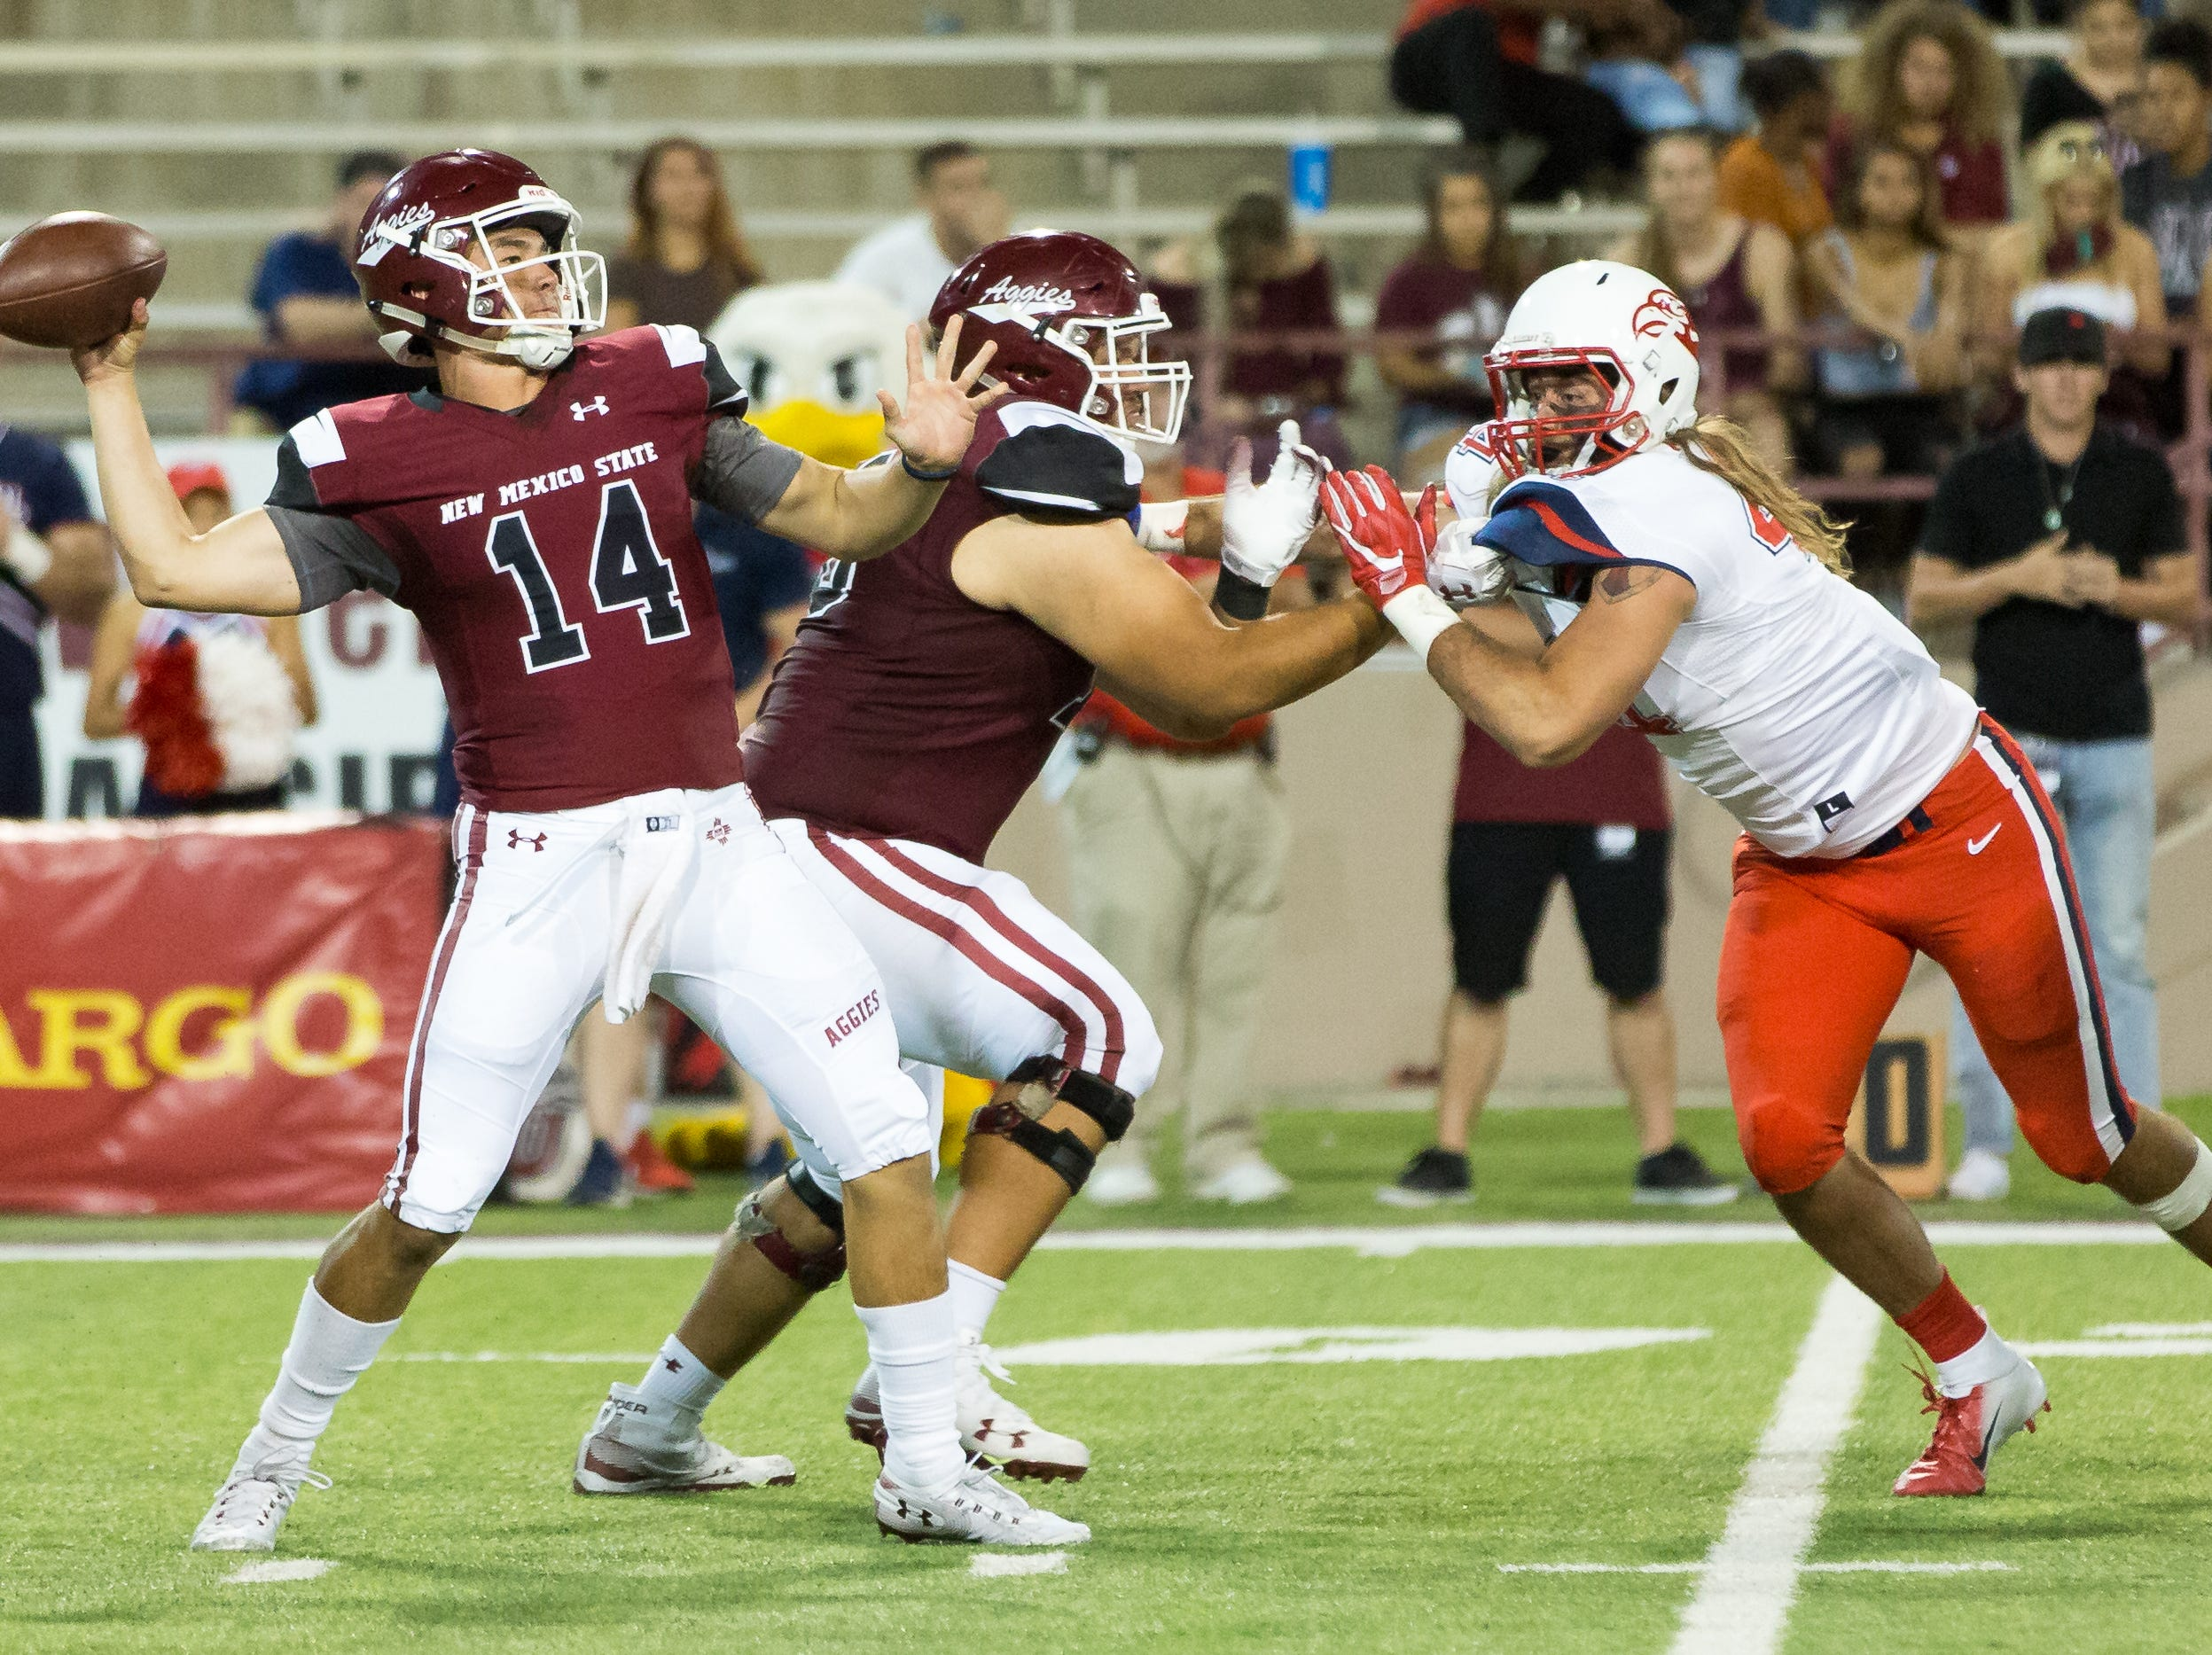 NMSU quarterback Josh Adkins throws the ball while playing against Liberty on Saturday, Oct. 6, 2018 at Aggie Memorial Stadium.